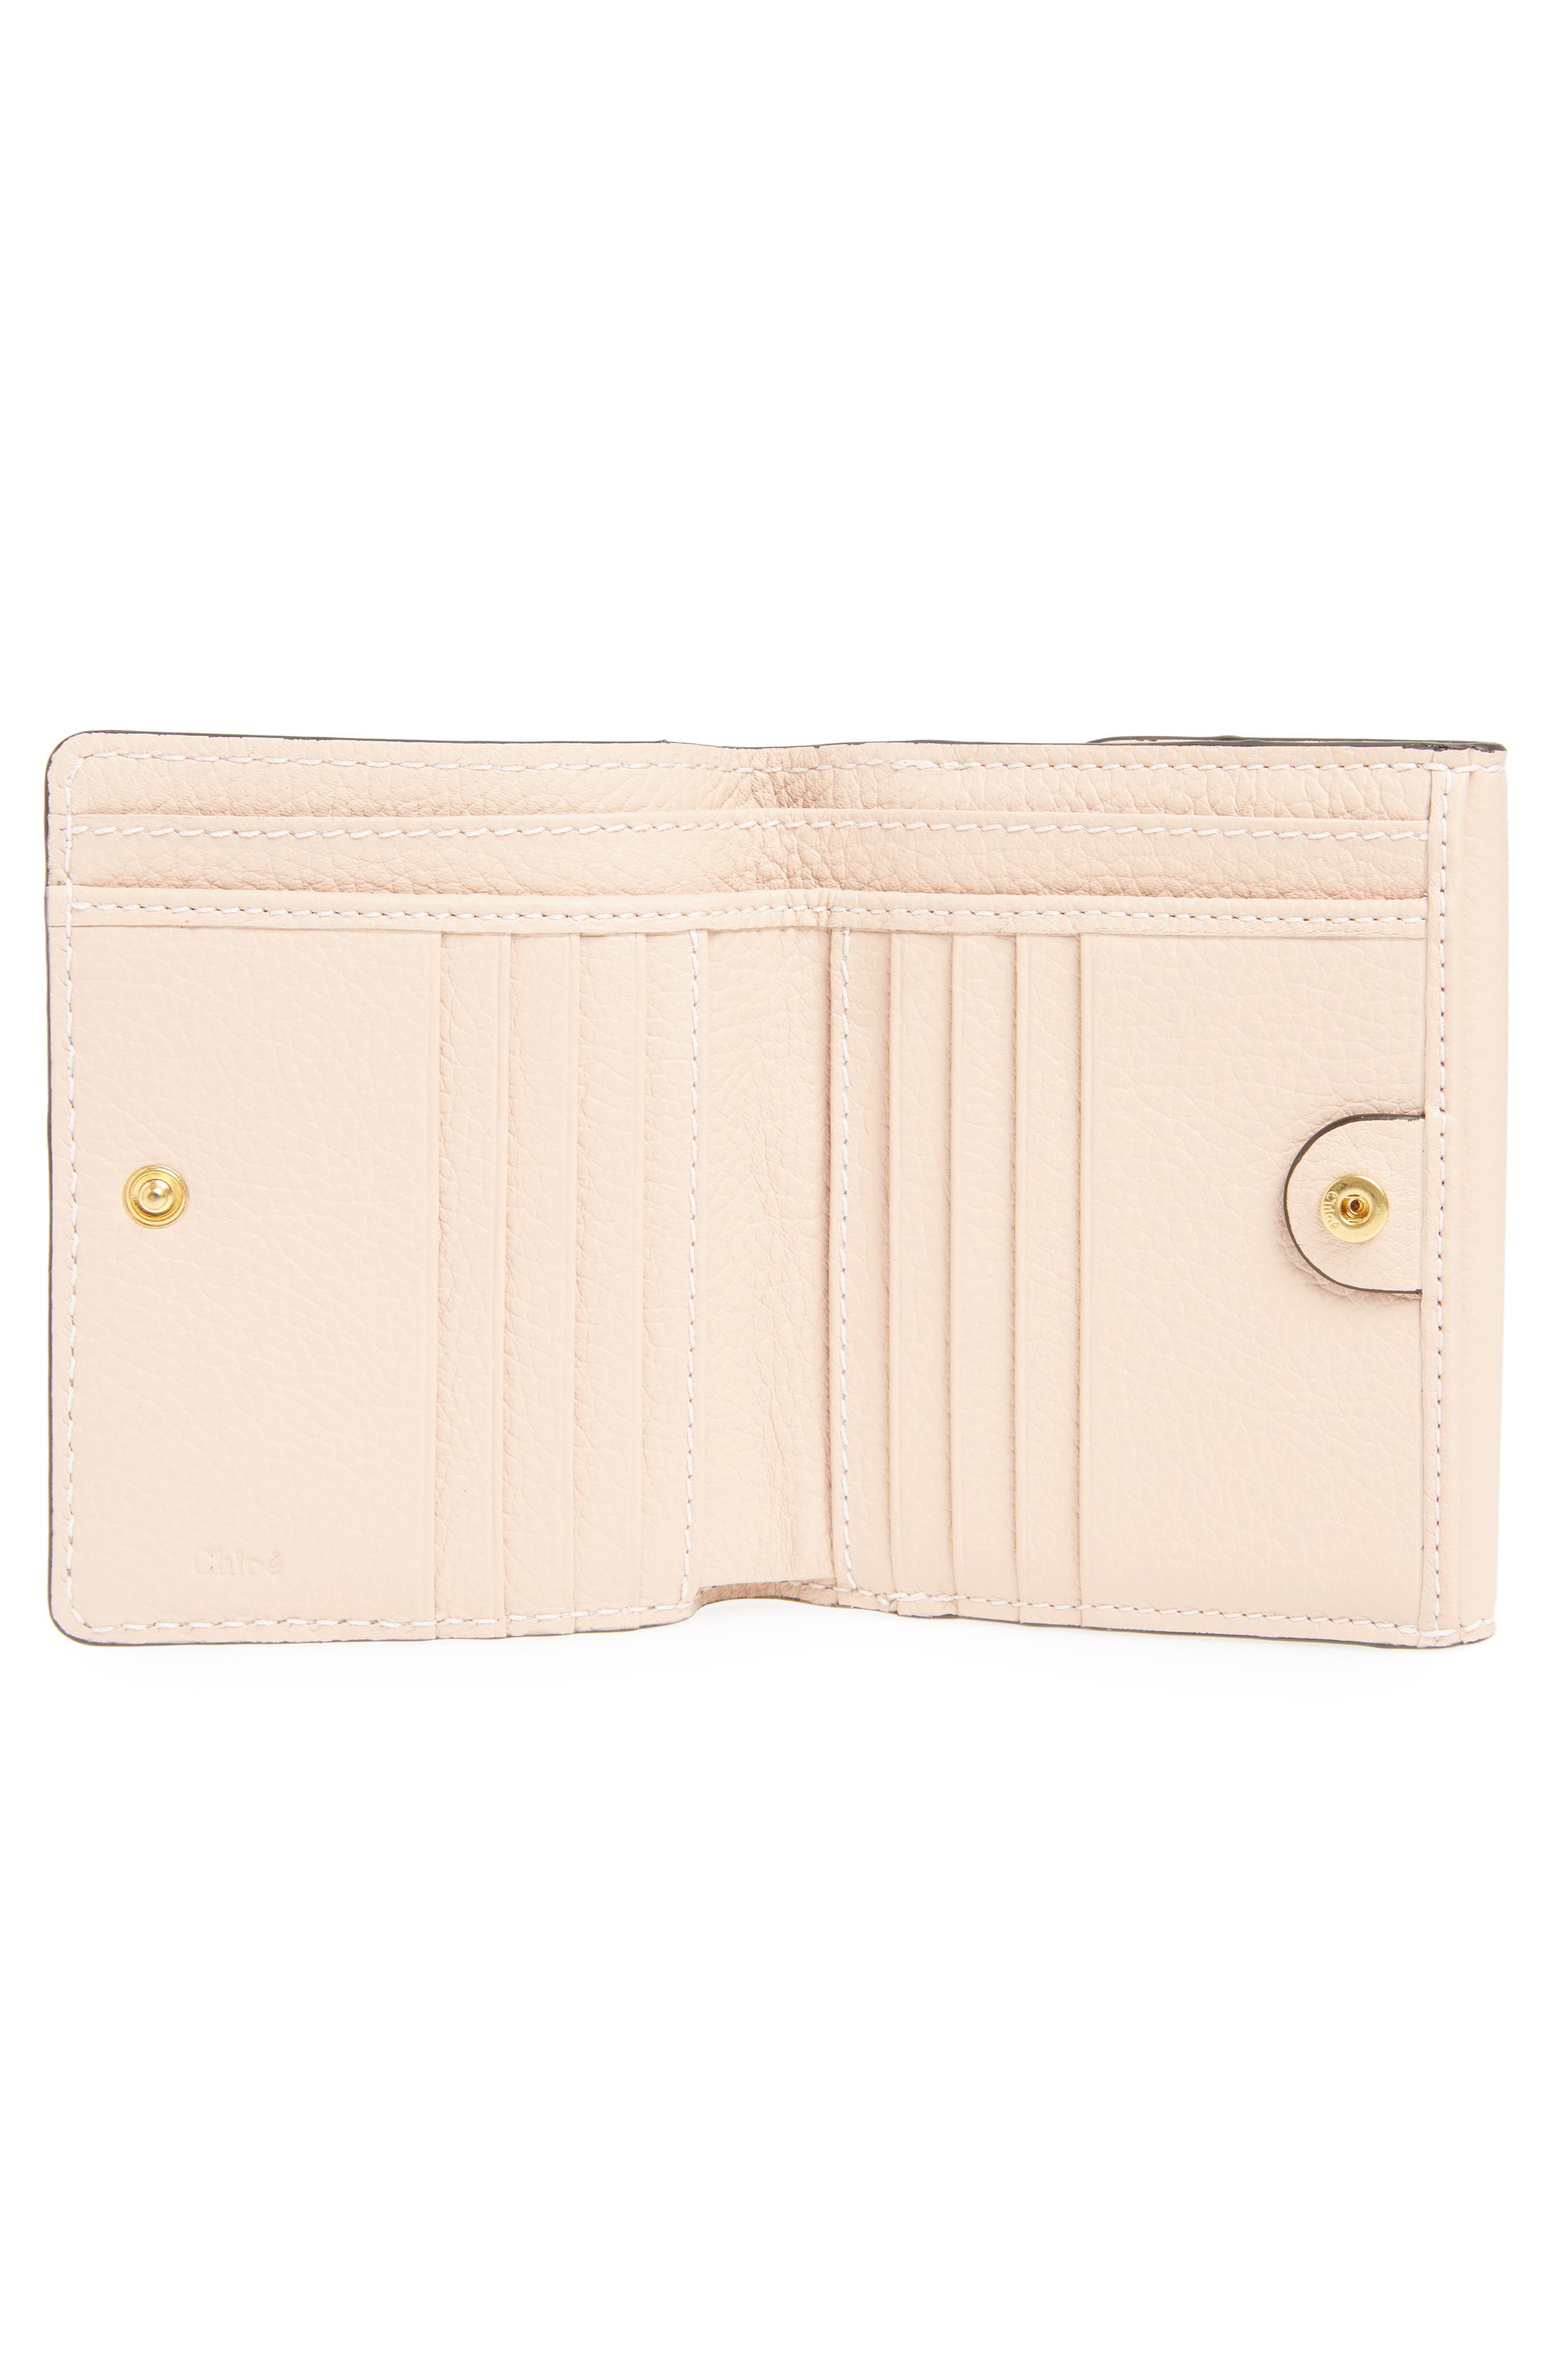 'Marcie' French Wallet,                             Alternate thumbnail 2, color,                             Blush Nude